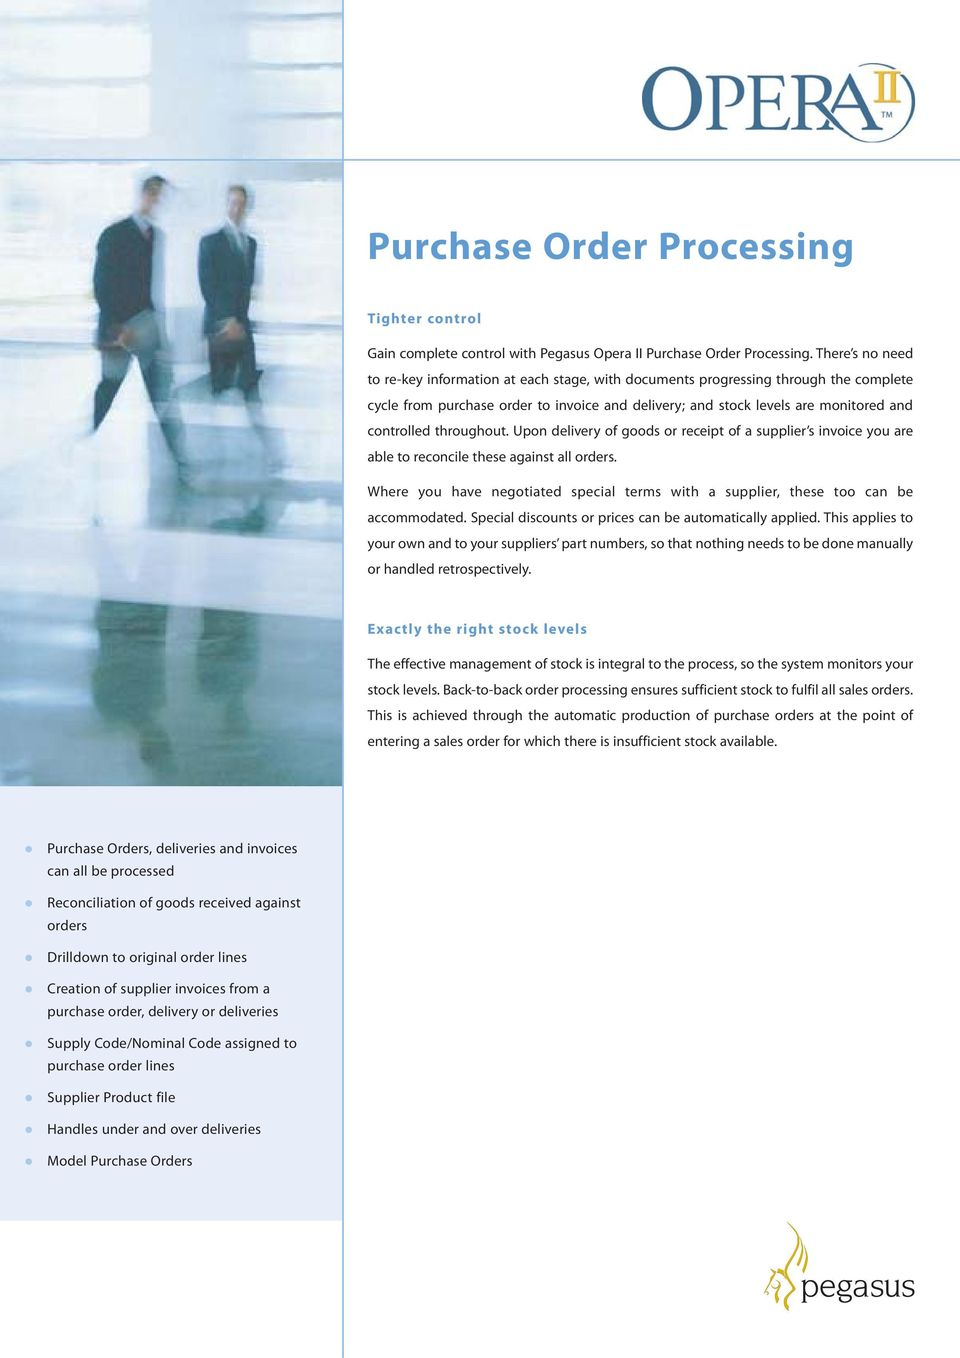 throughout. Upon delivery of goods or receipt of a supplier s invoice you are able to reconcile these against all orders.